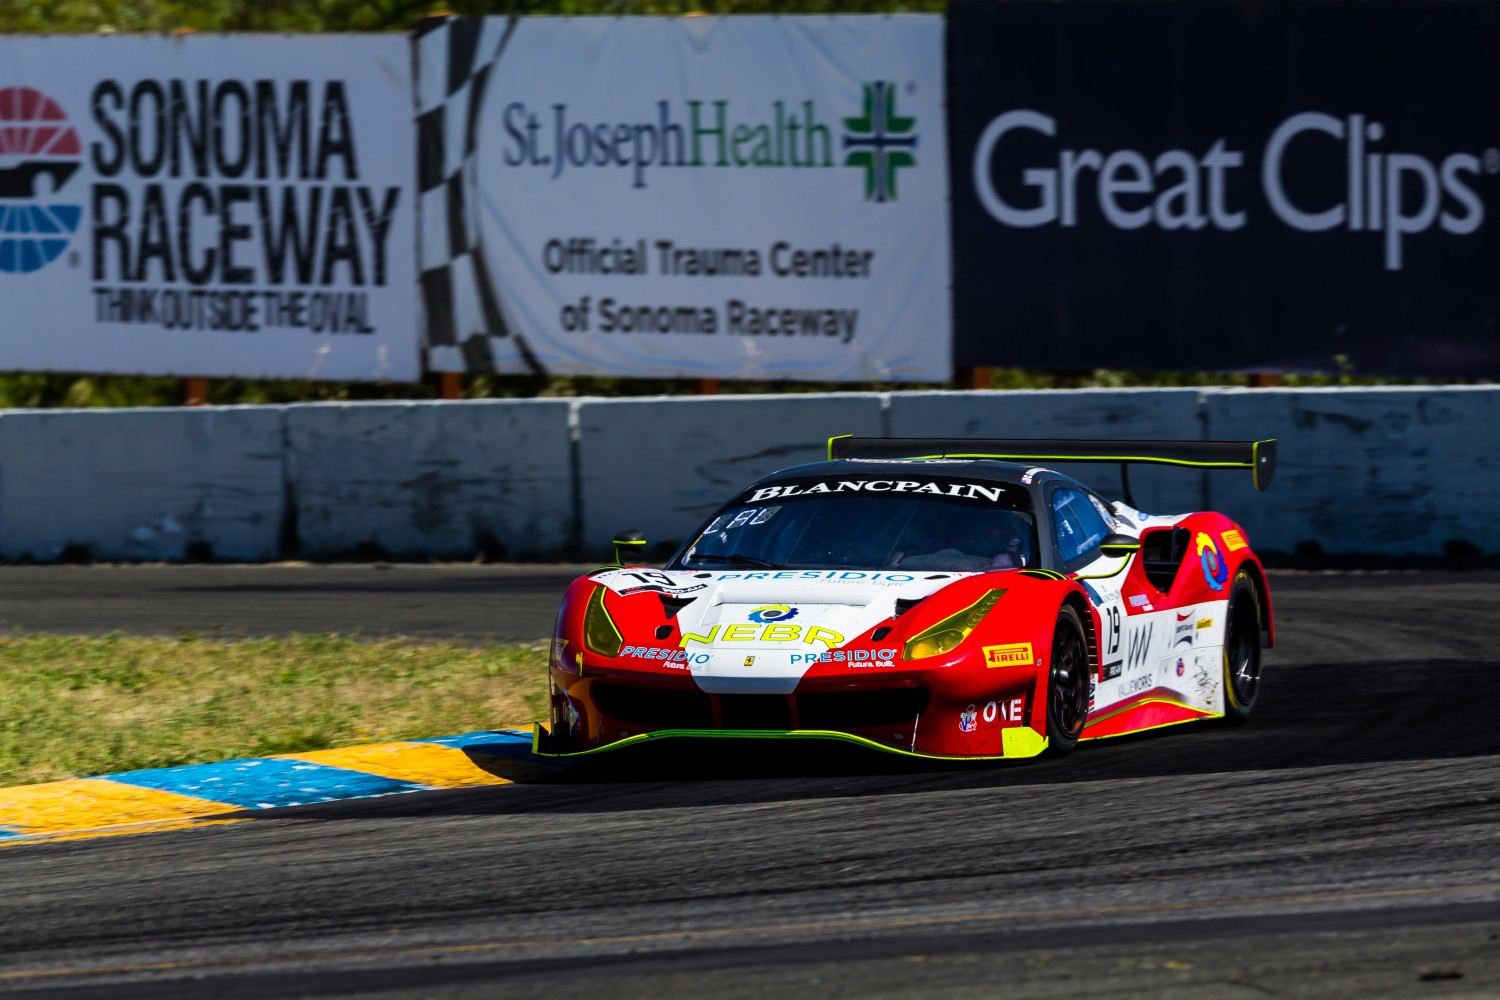 #19 Ferrari 488 GT3 of Christopher Cagnazzi and Andy Lally   SRO at Sonoma Raceway, Sonoma CA | Fabian Lagunas/SRO